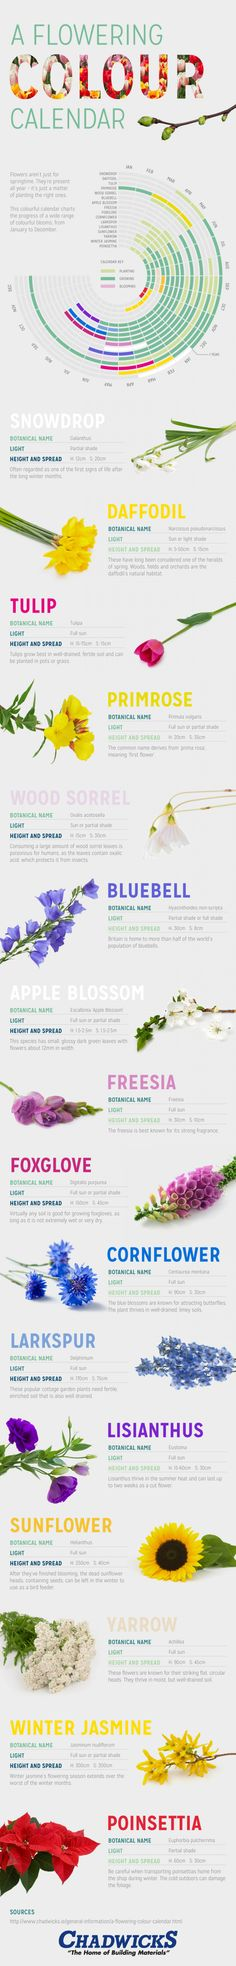 A Flowering Colour Calendar by chadwicks.ie #Infographic #Flower_Calendar